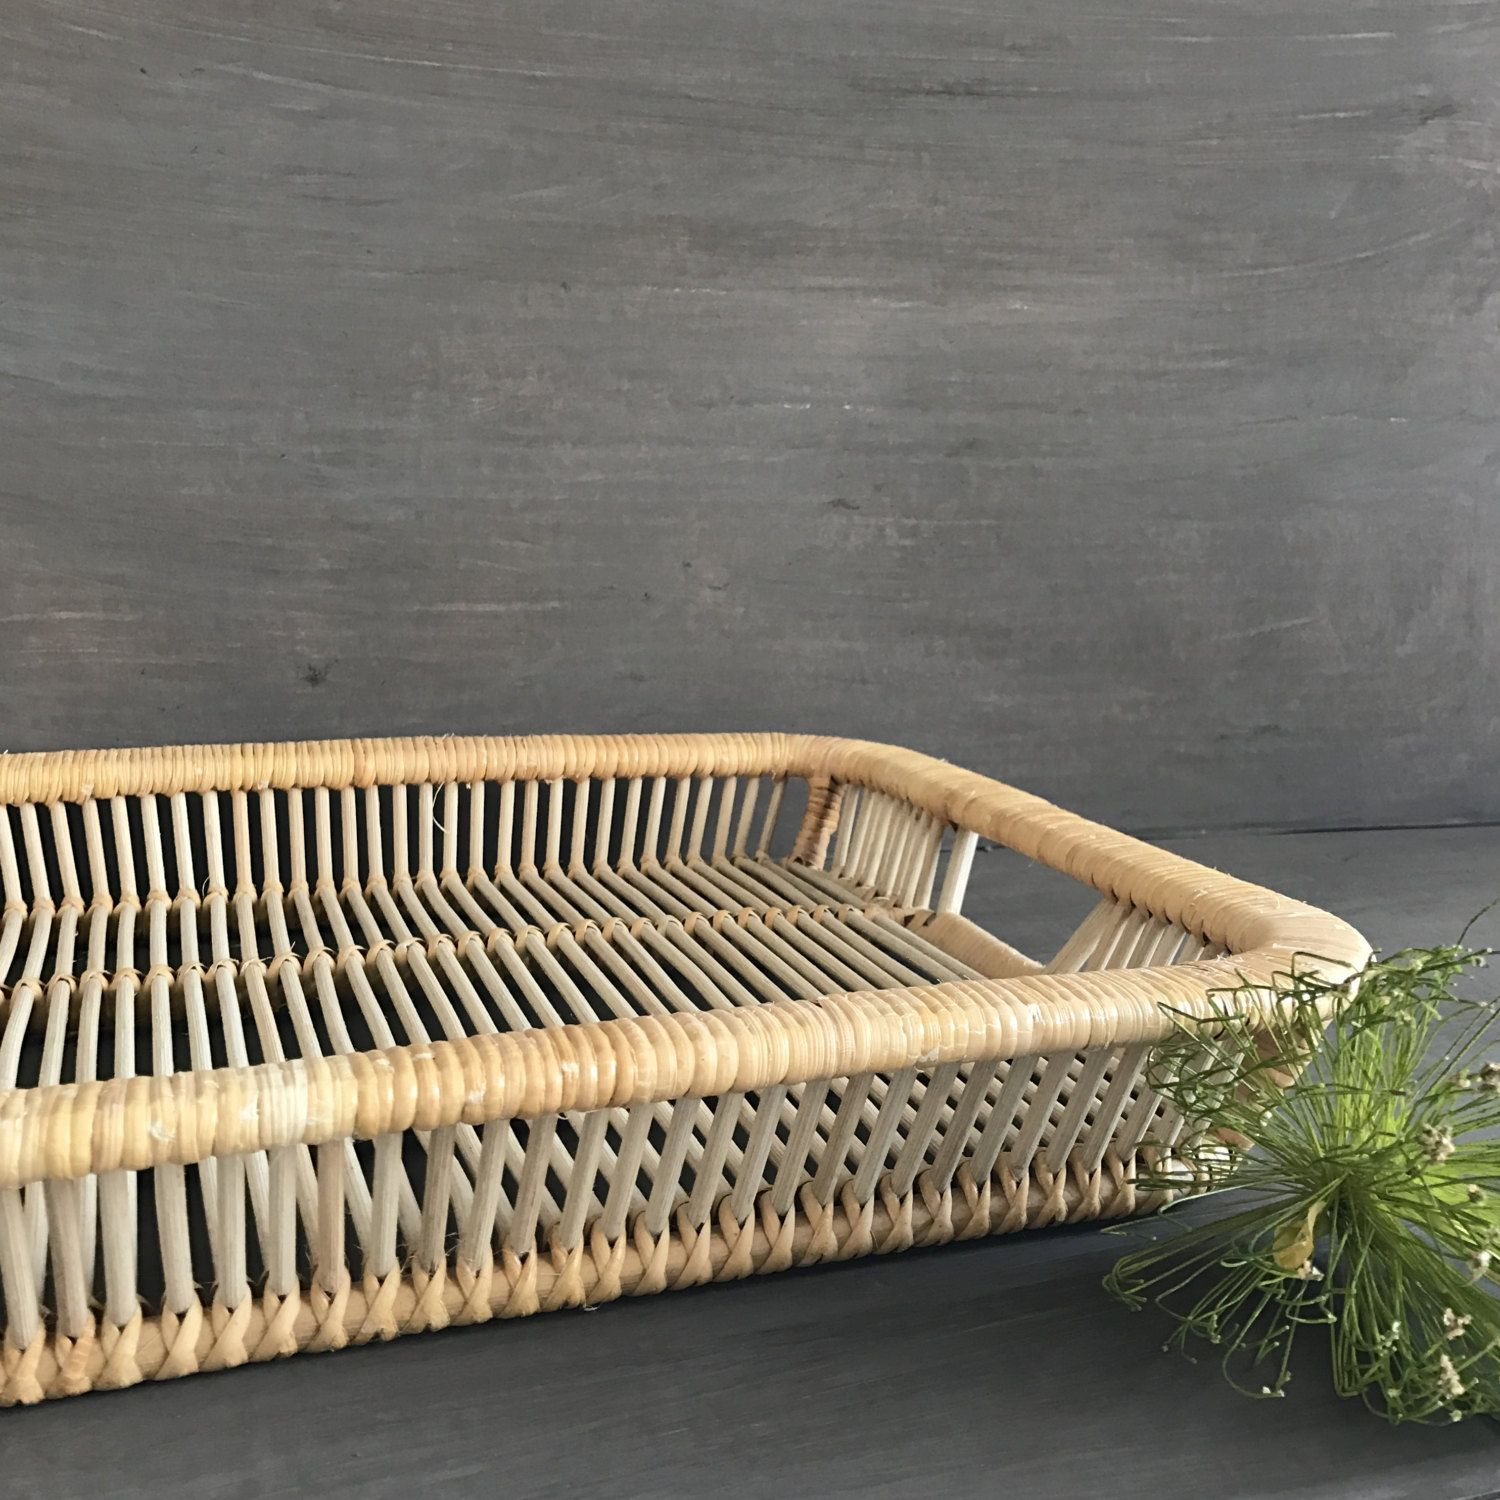 Rattan Coffee Table Etsy: Vintage Rattan Woven Cane Serving Tray Basket